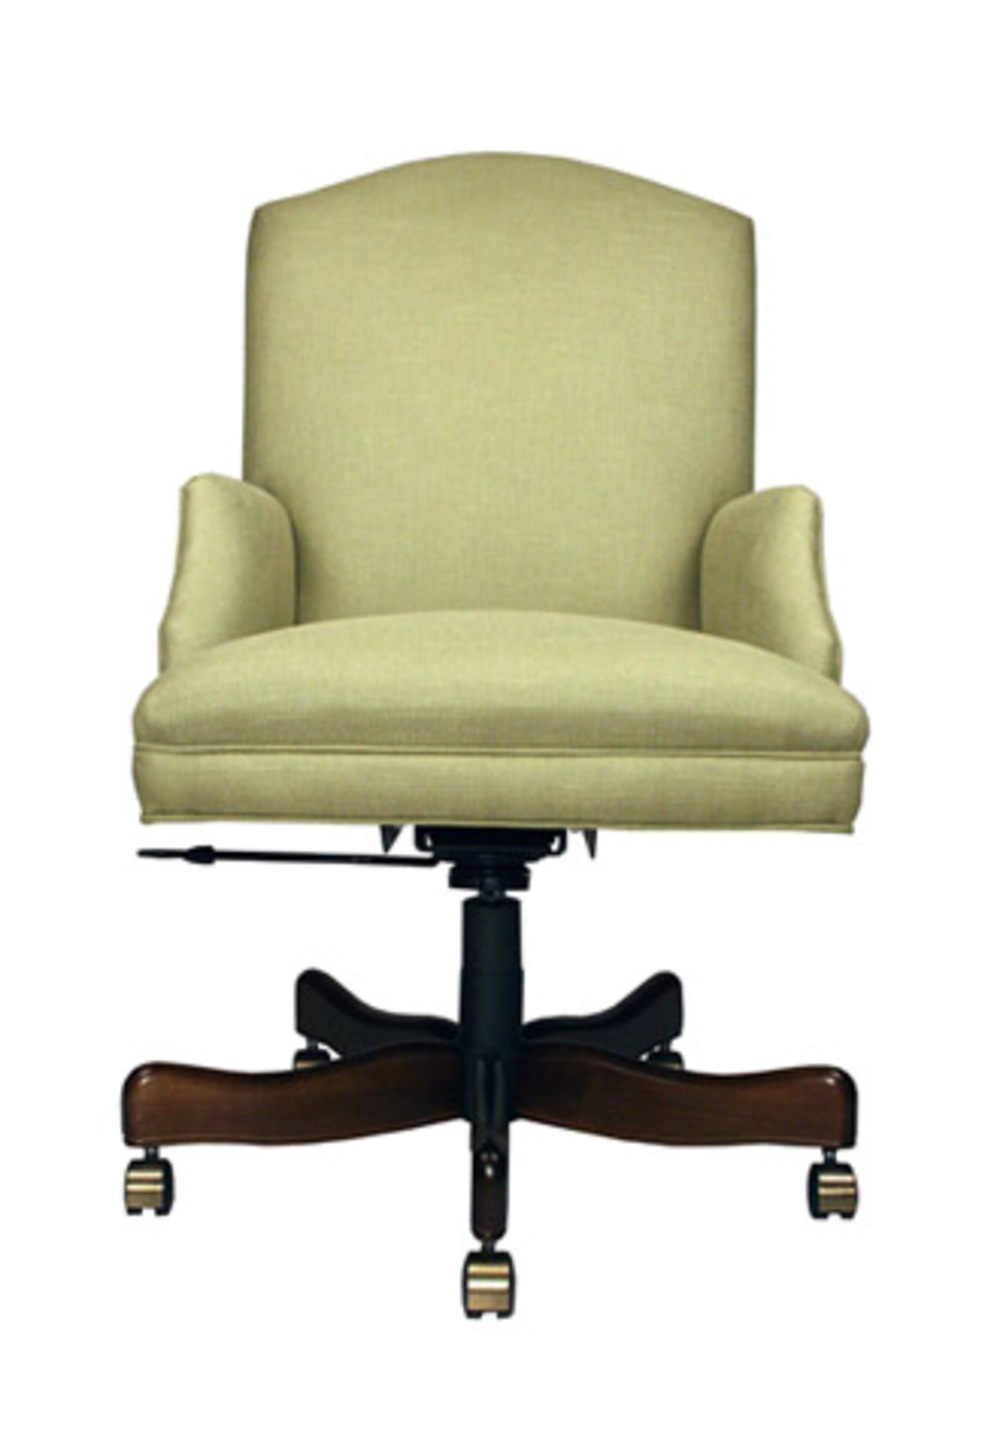 Style Upholstering - Swivel Chair